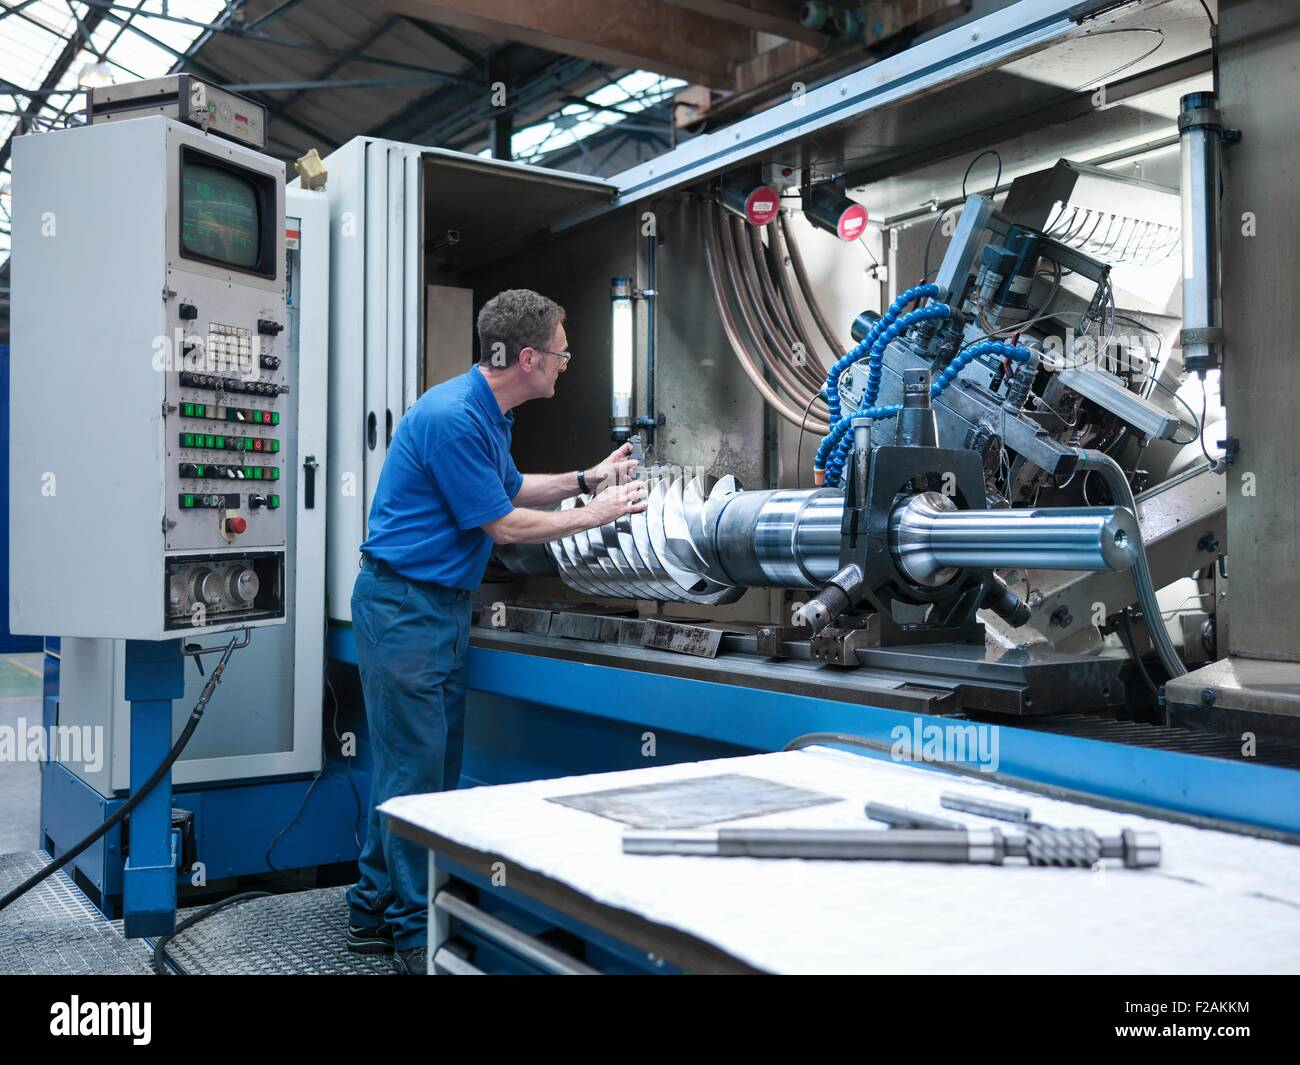 Engineer inspecting worm drive gear in lathe in engineering factory - Stock Image